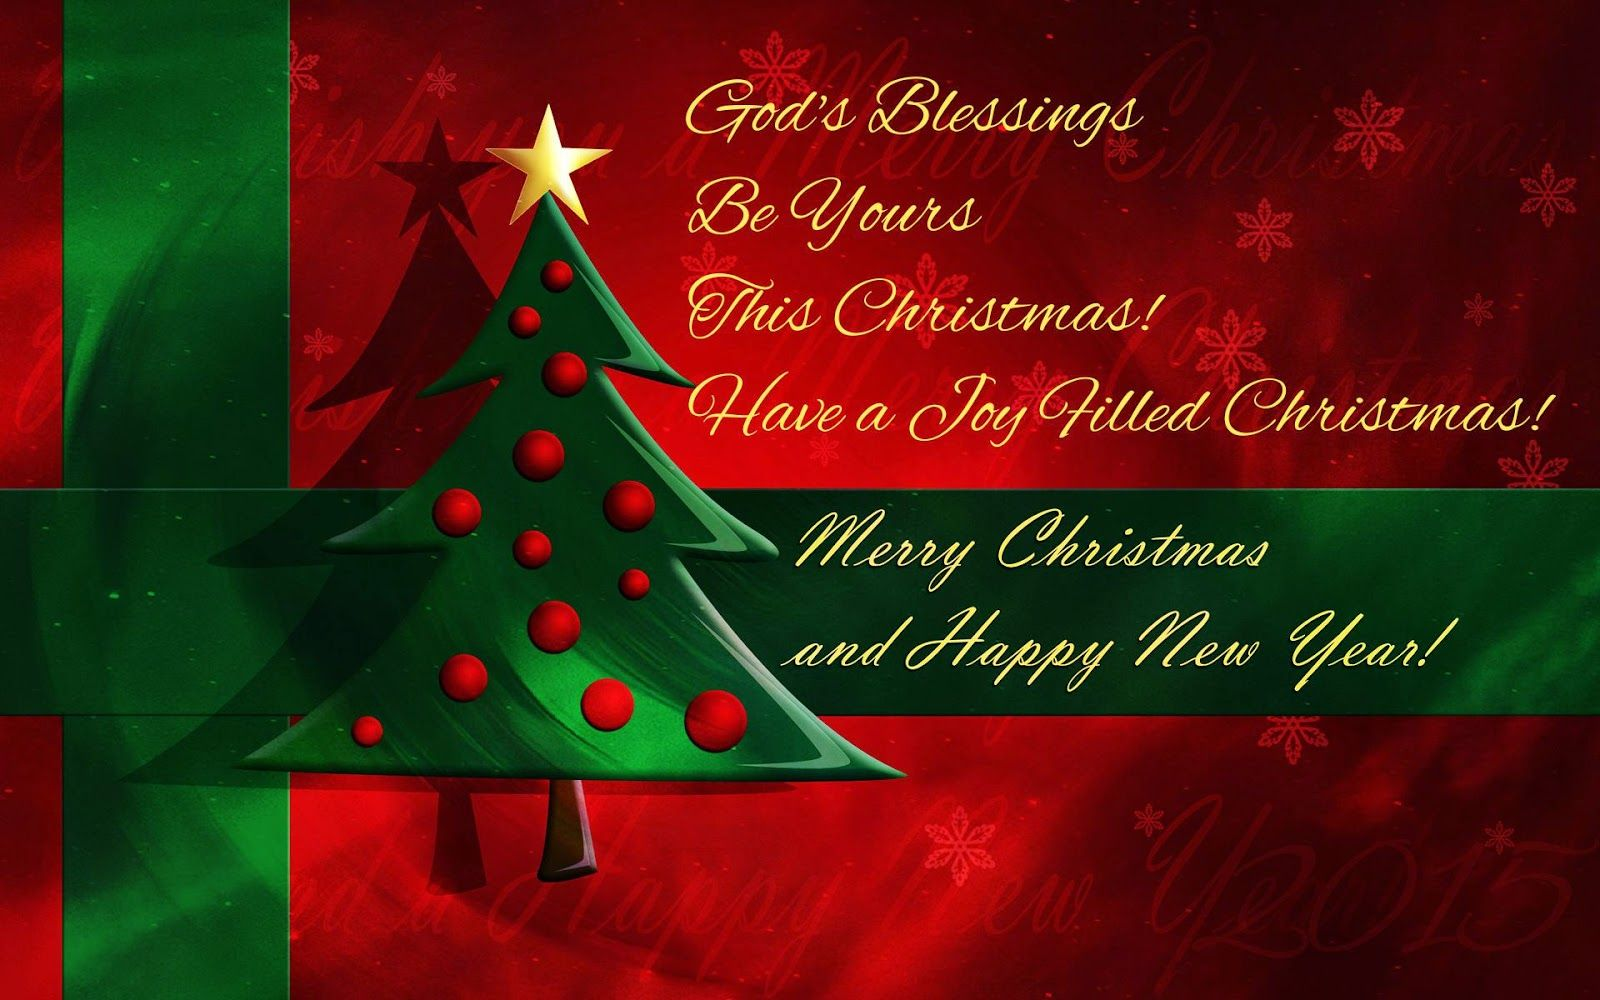 Christmas Greetings Quotes.Pin On Merry Christmas